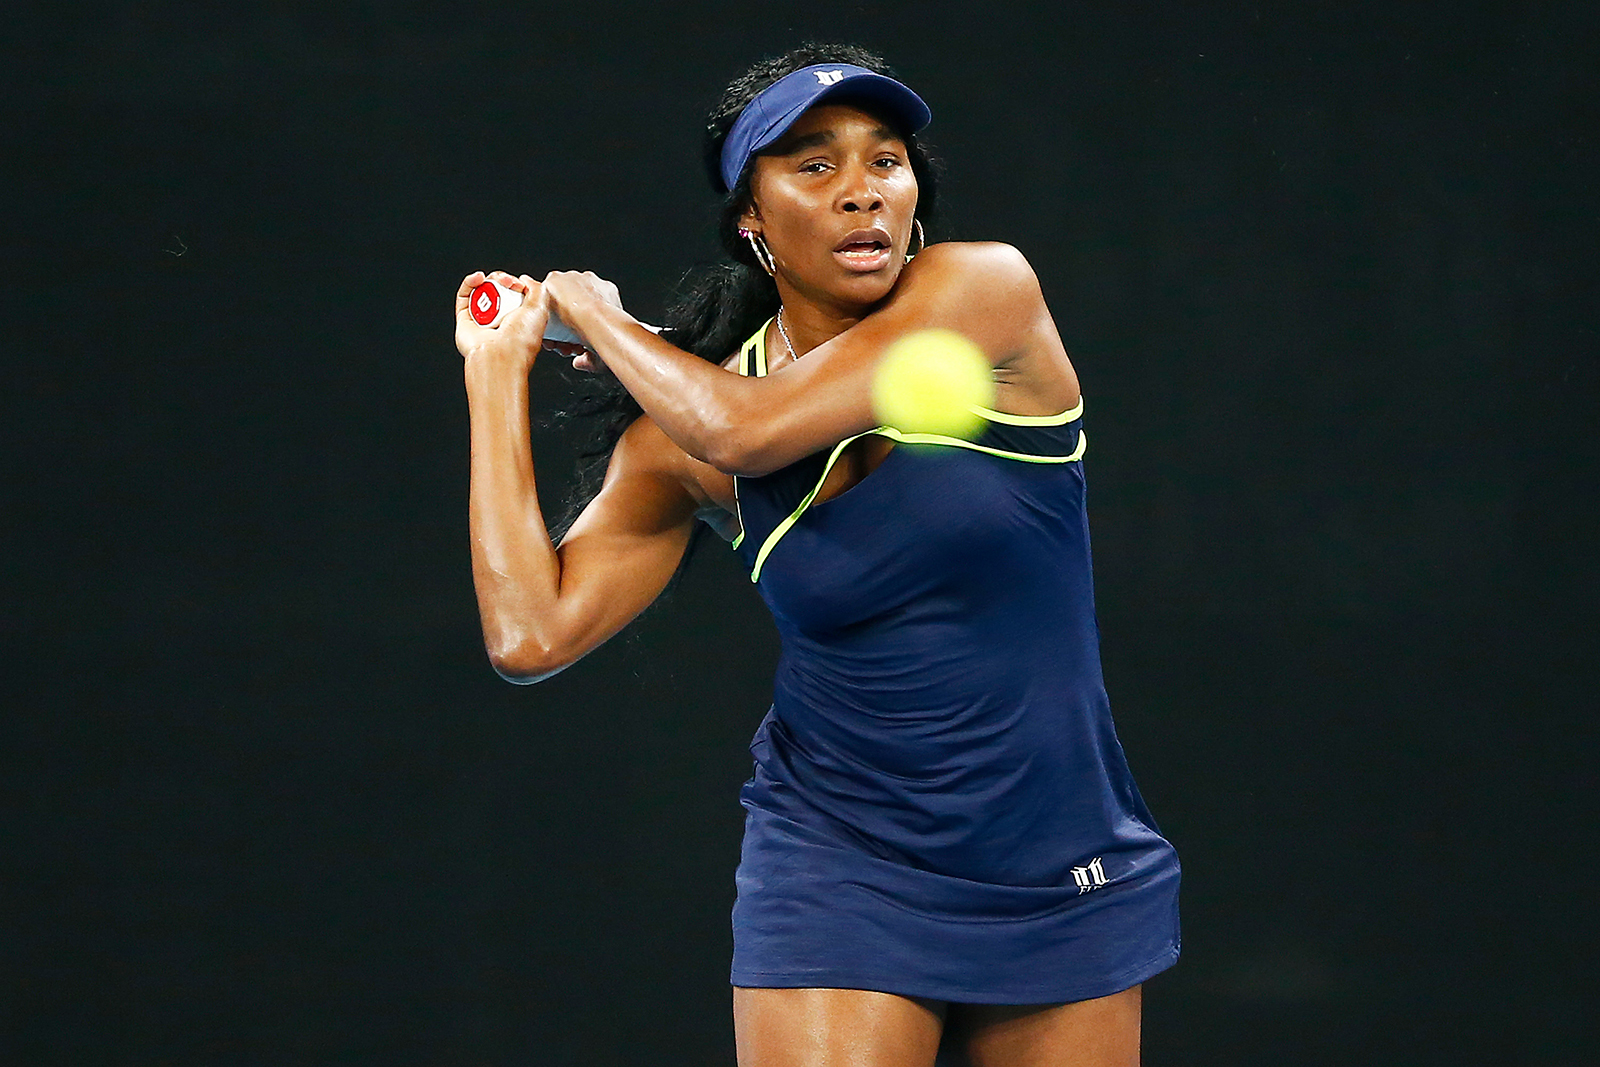 Venus Williams practices ahead of the 2020 Australian Open at Melbourne Park on January 16, in Melbourne, Australia.